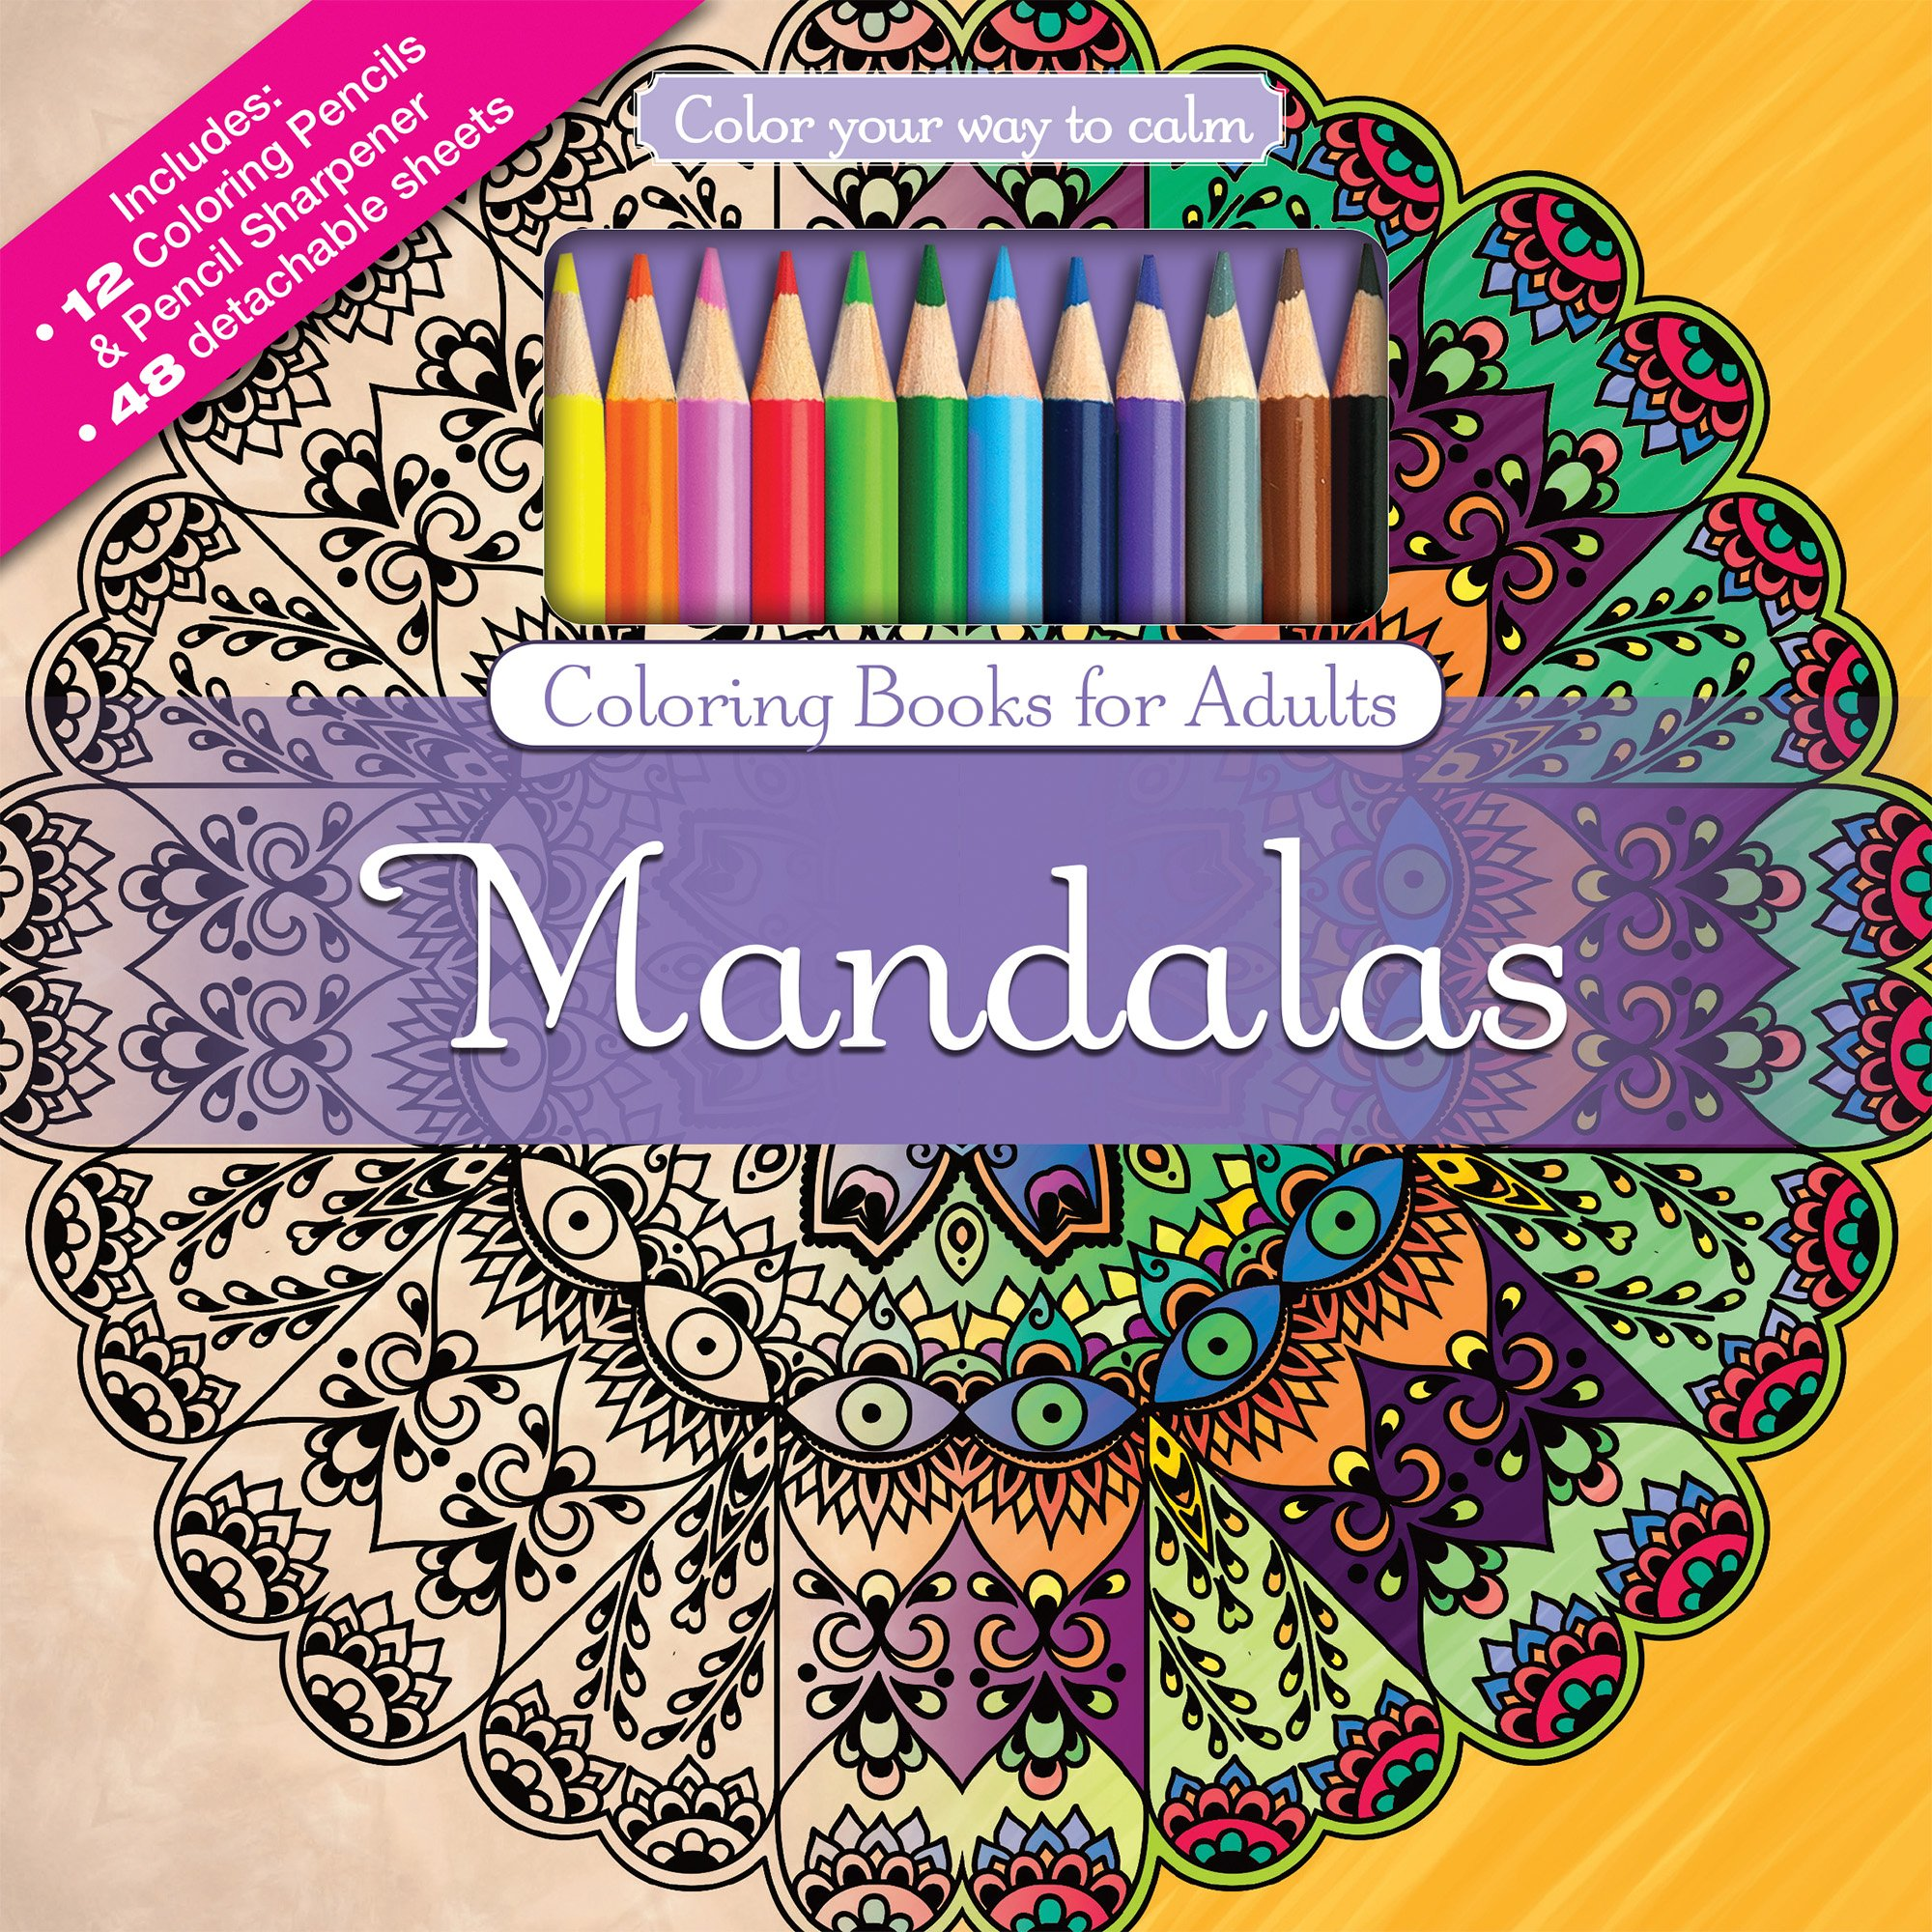 amazoncom mandalas adult coloring book set with 24 colored pencils and pencil sharpener included color your way to calm 9781988137254 newbourne media - Coloring Books